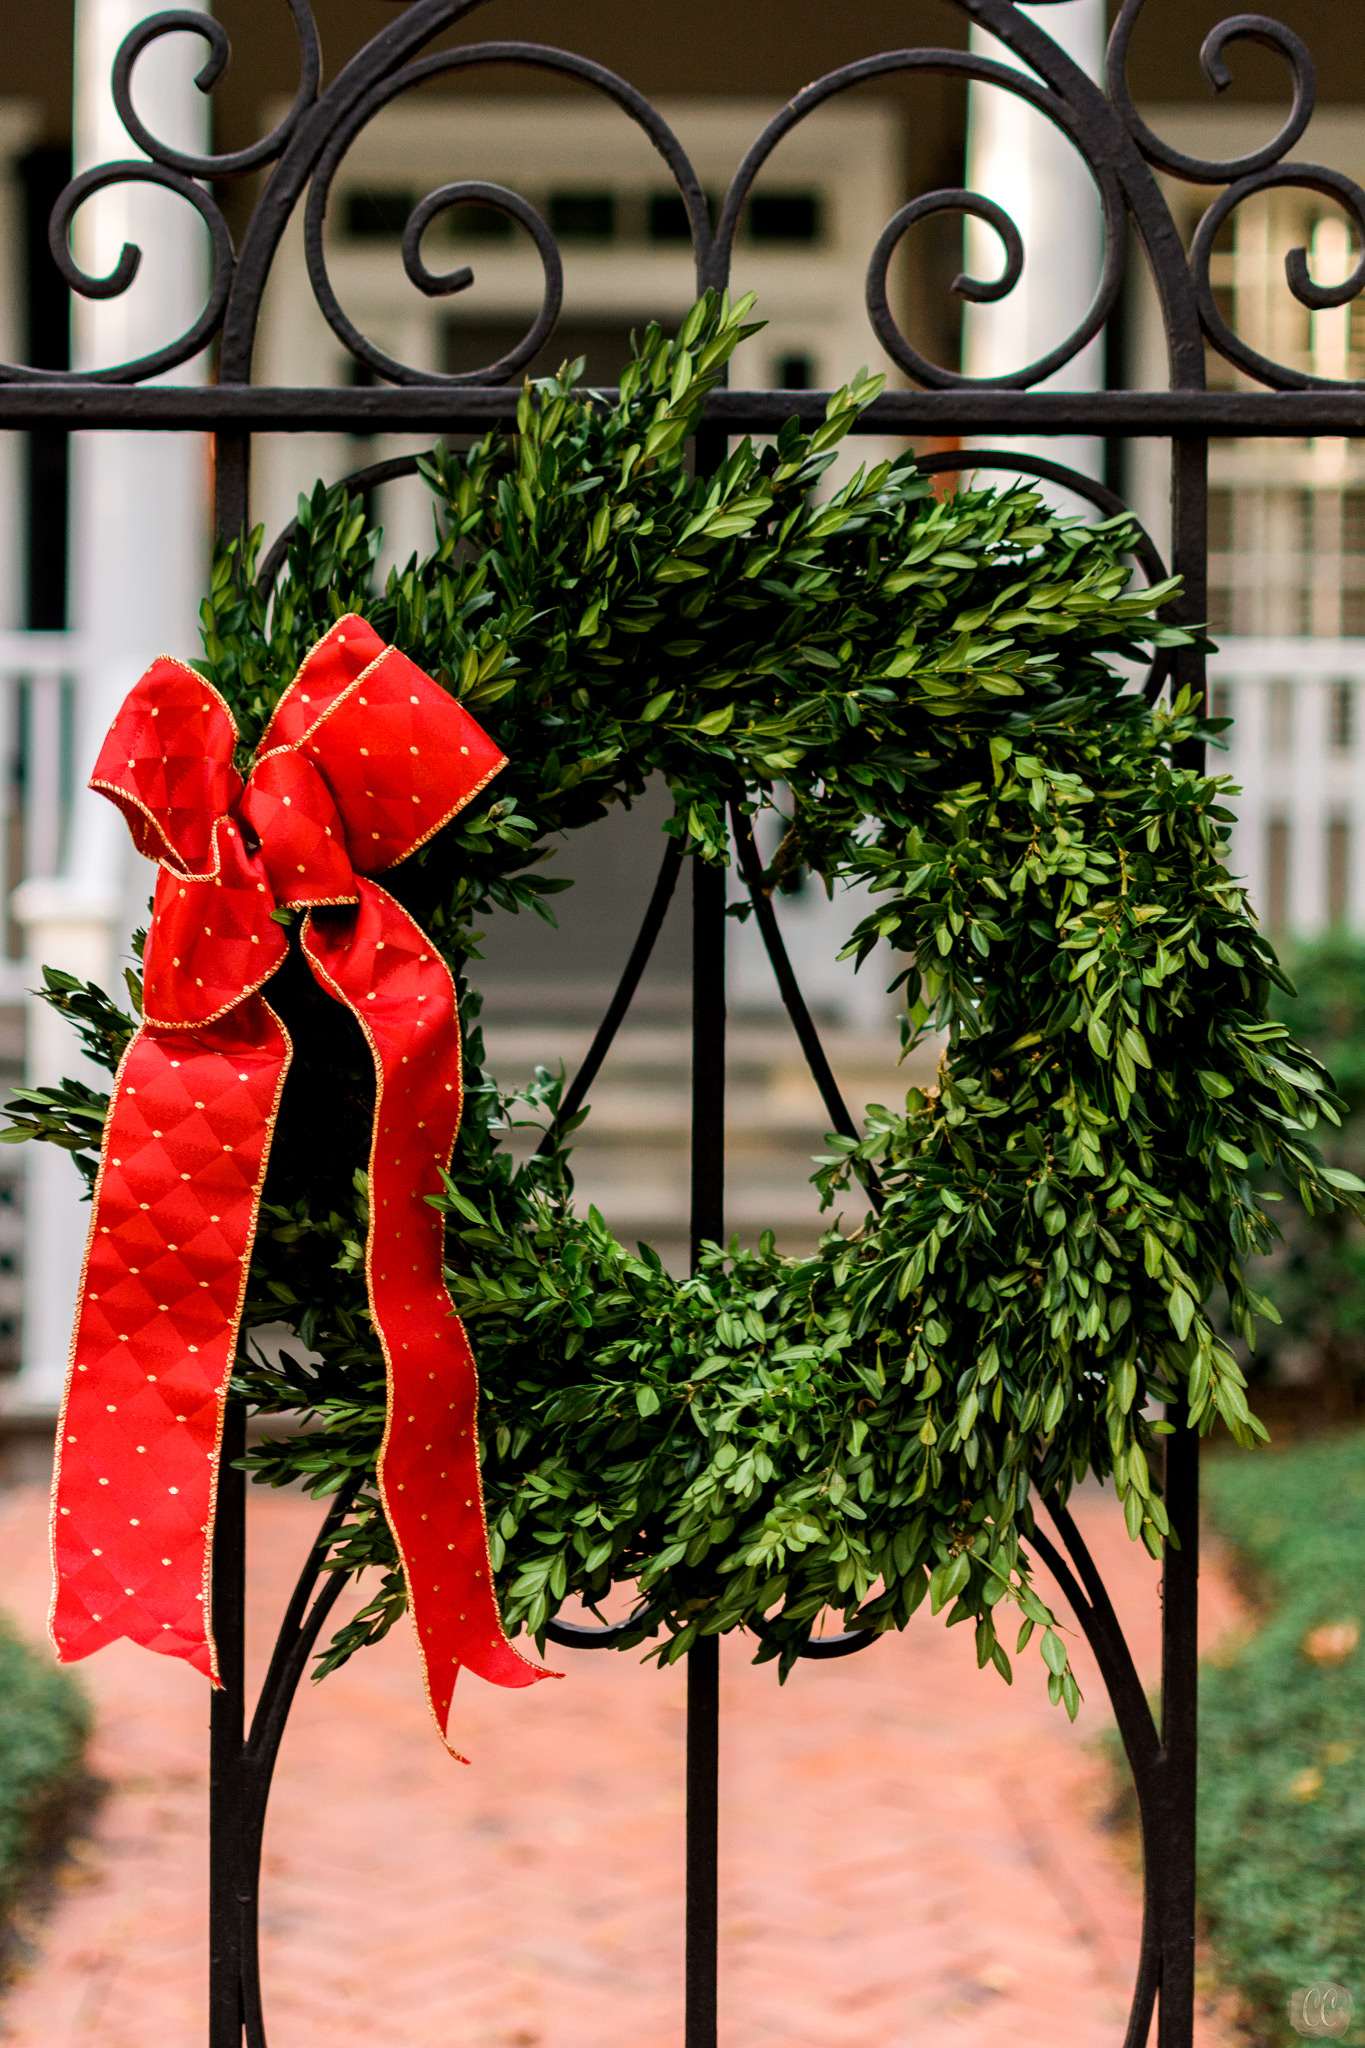 Florida Photo Safari with Carlie Chew Photography and The Florida Museum of Photographic Arts, Christmas Wreath in Hyde Park Village